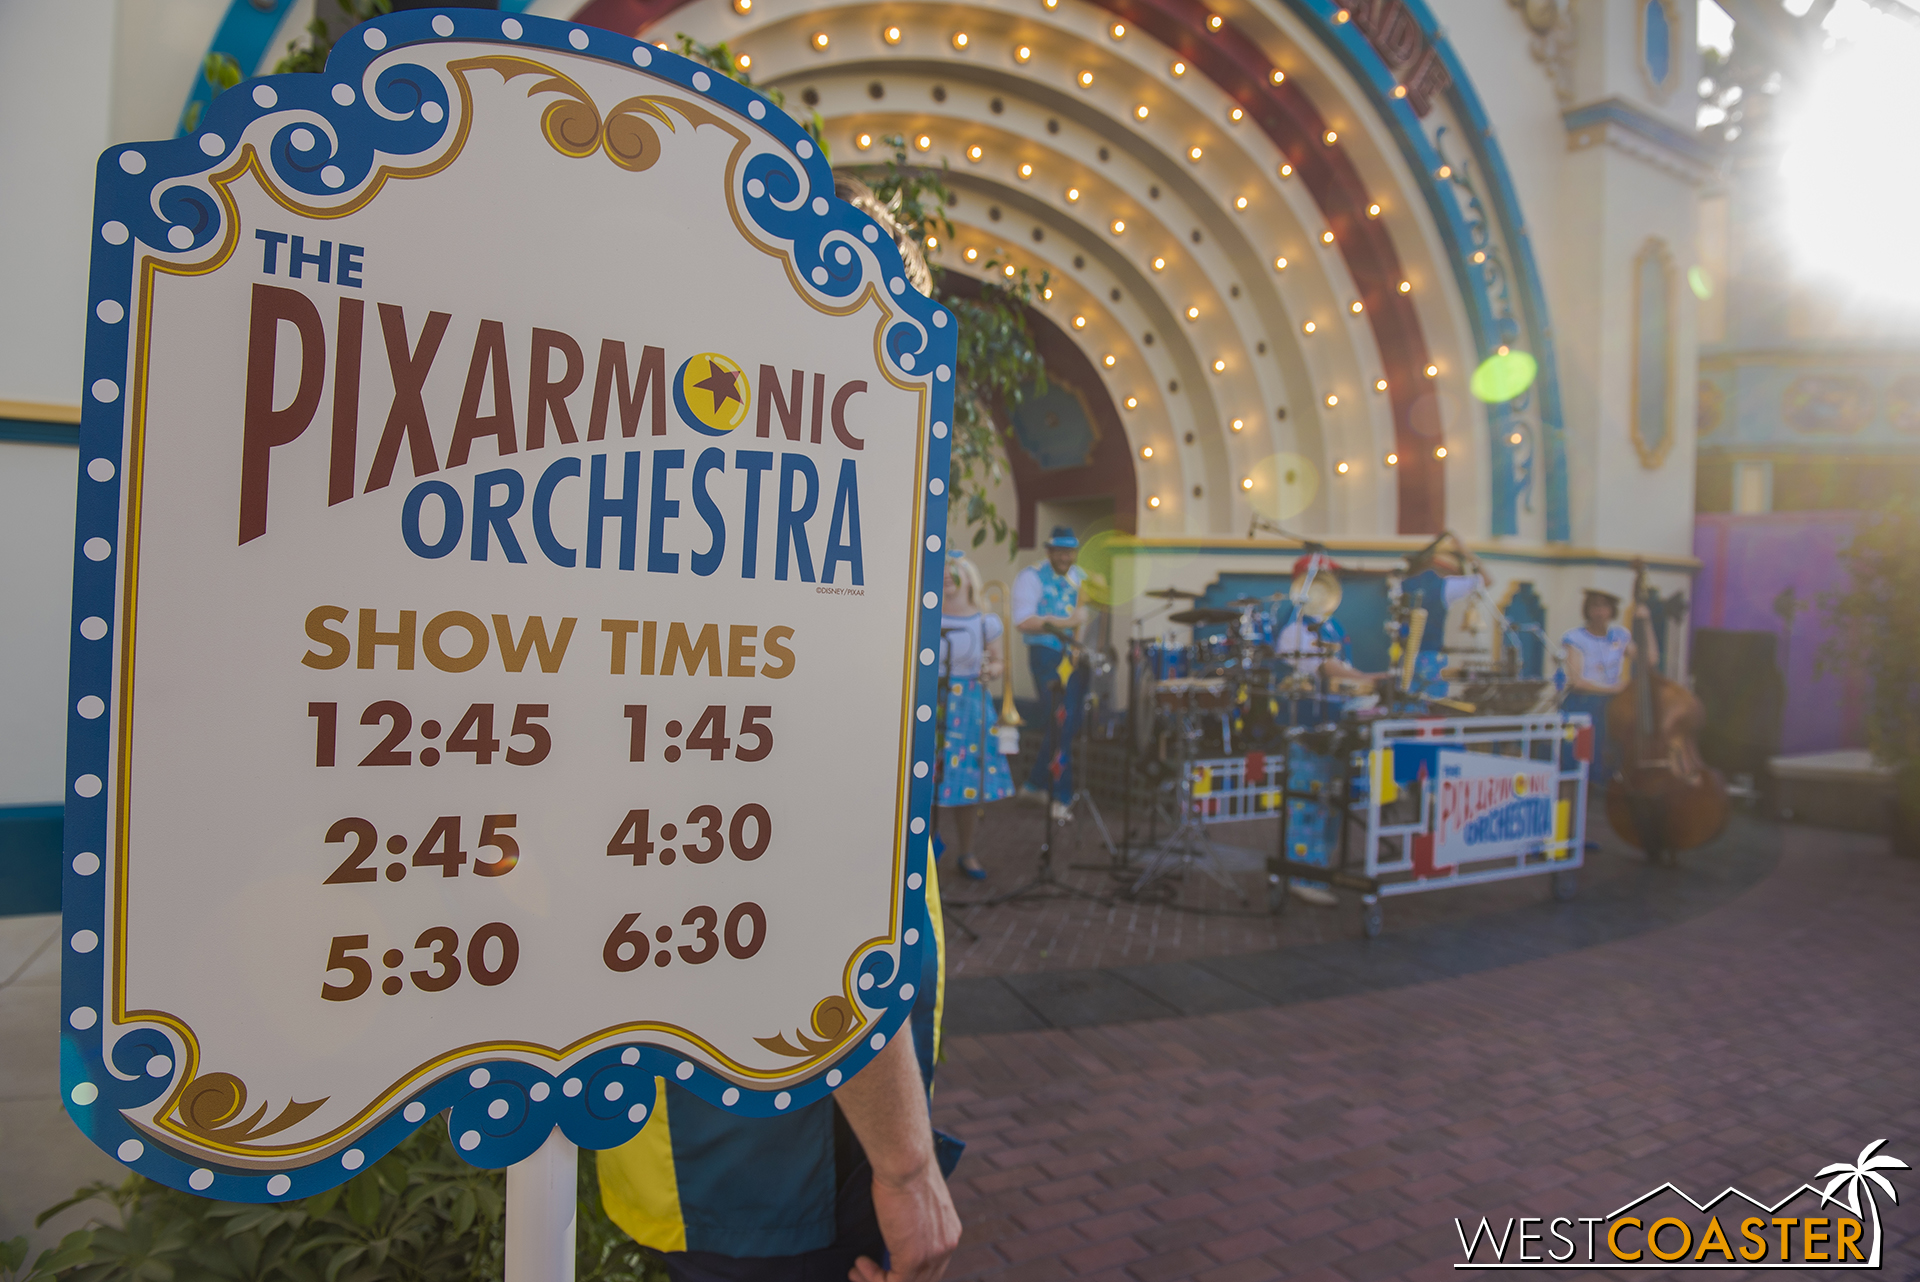 It's also the new home of the Pixarmonic Orchestra!